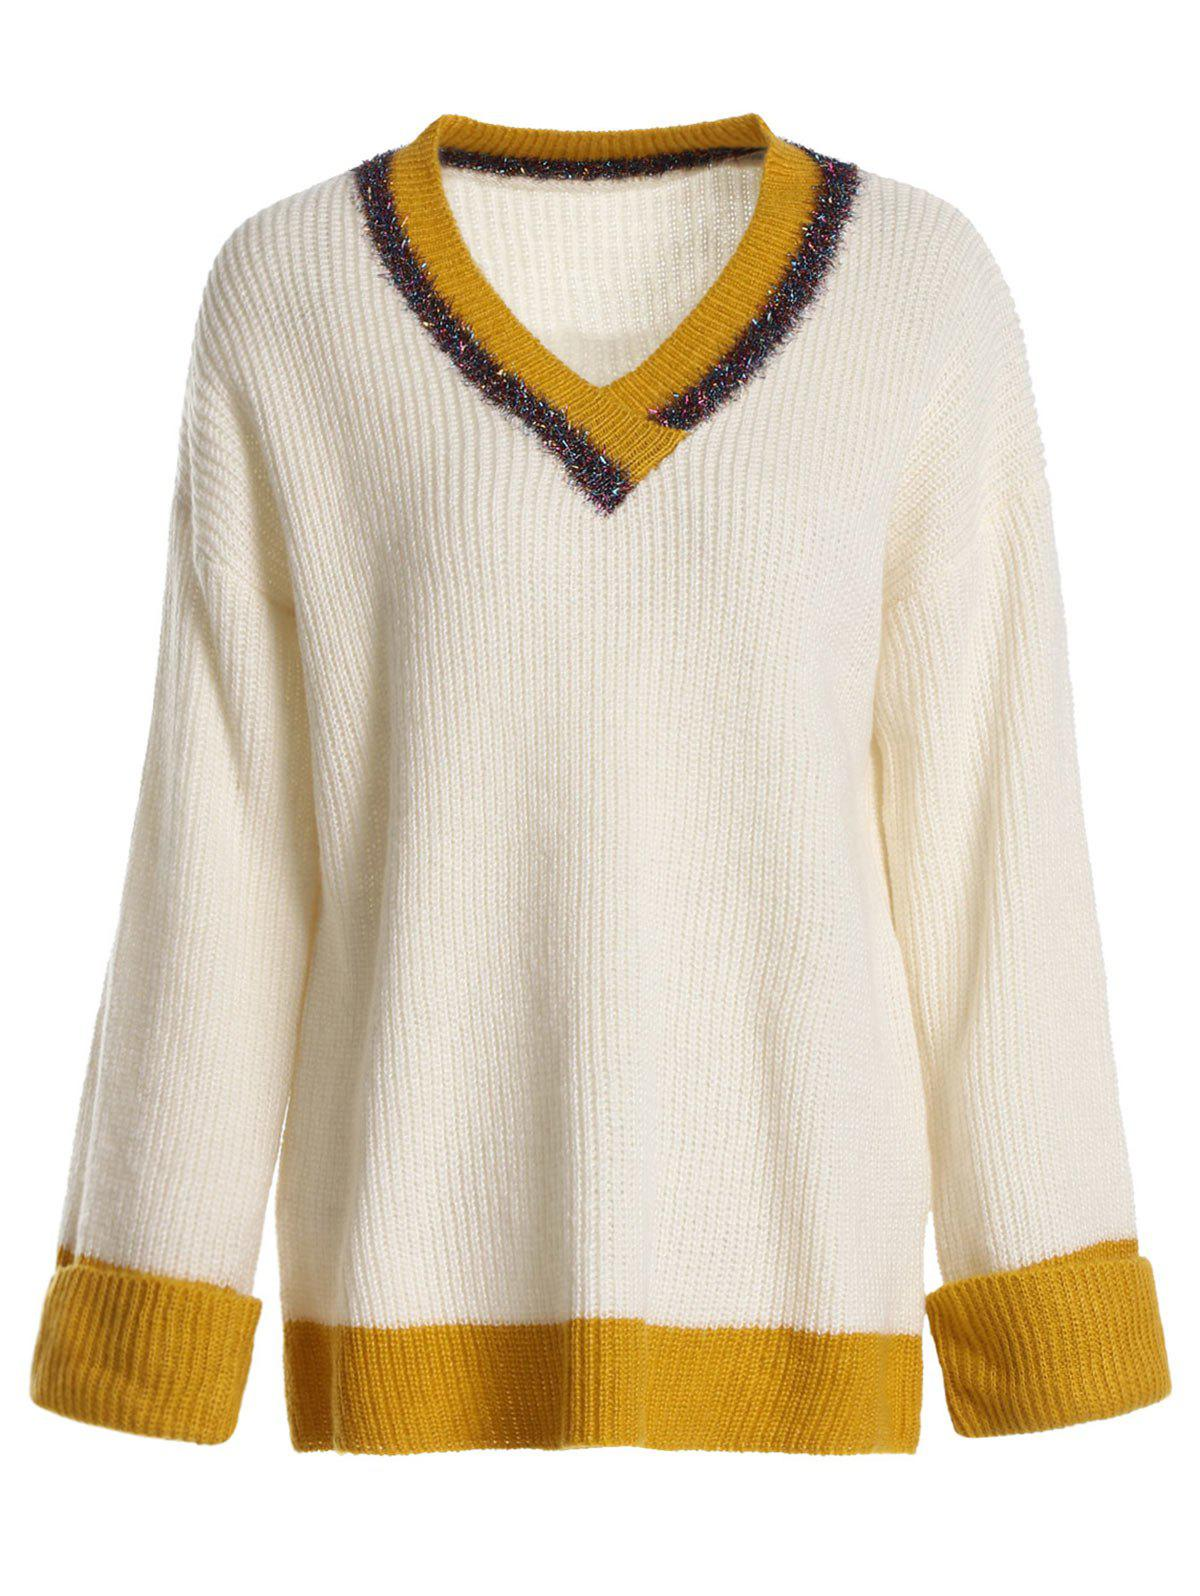 Discount Color Block Cricket Sweater